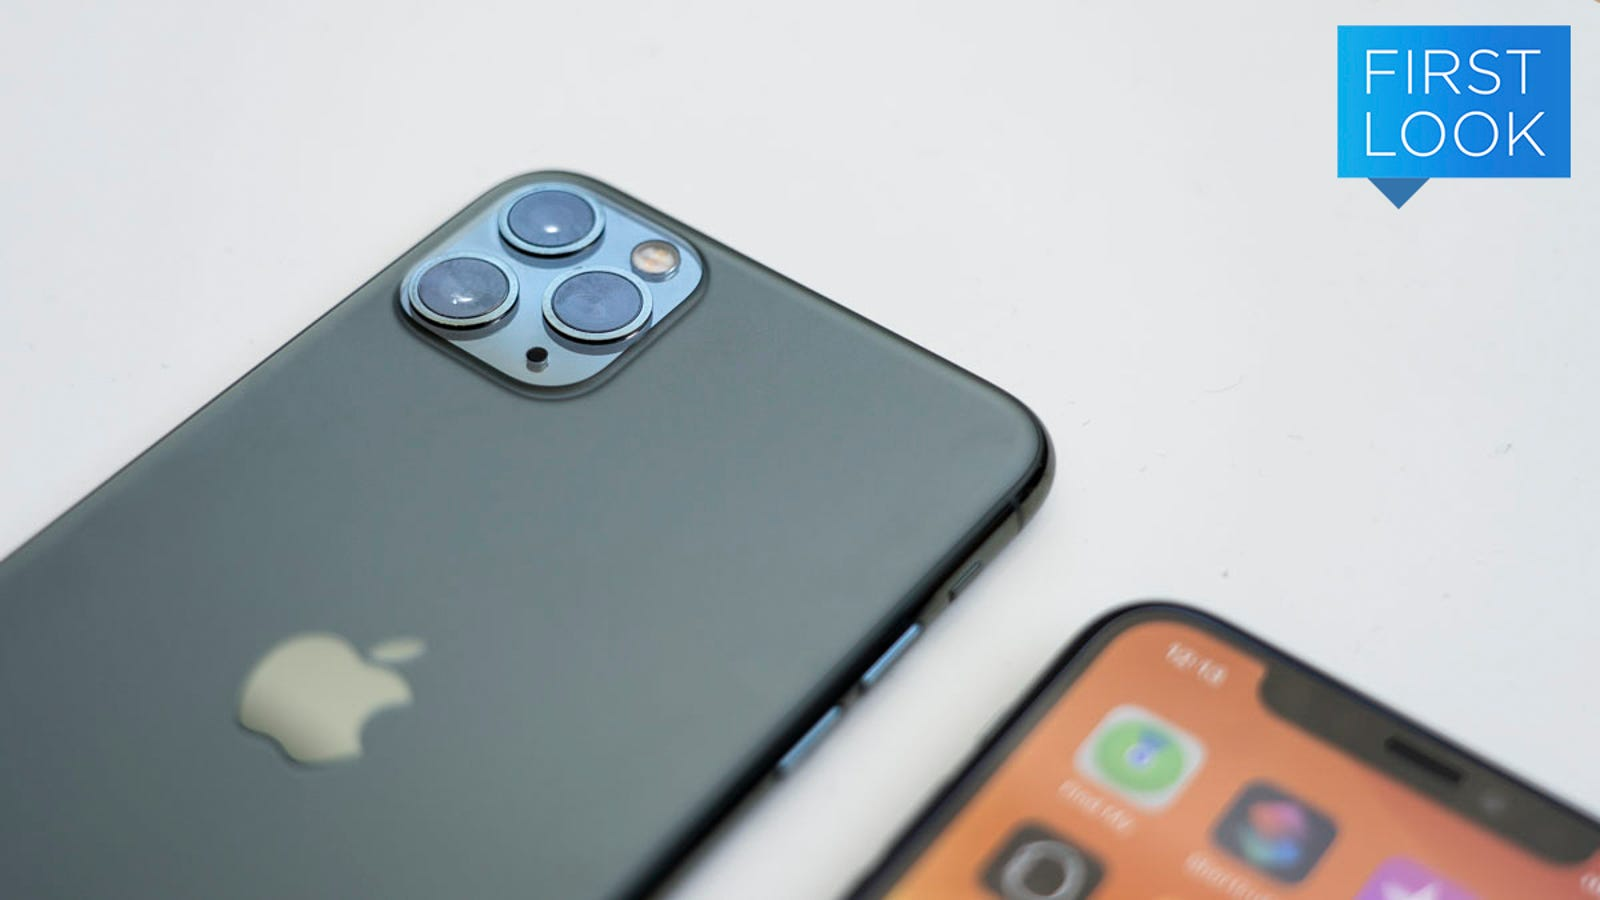 A First Look at the Triple-Camera iPhone Pro